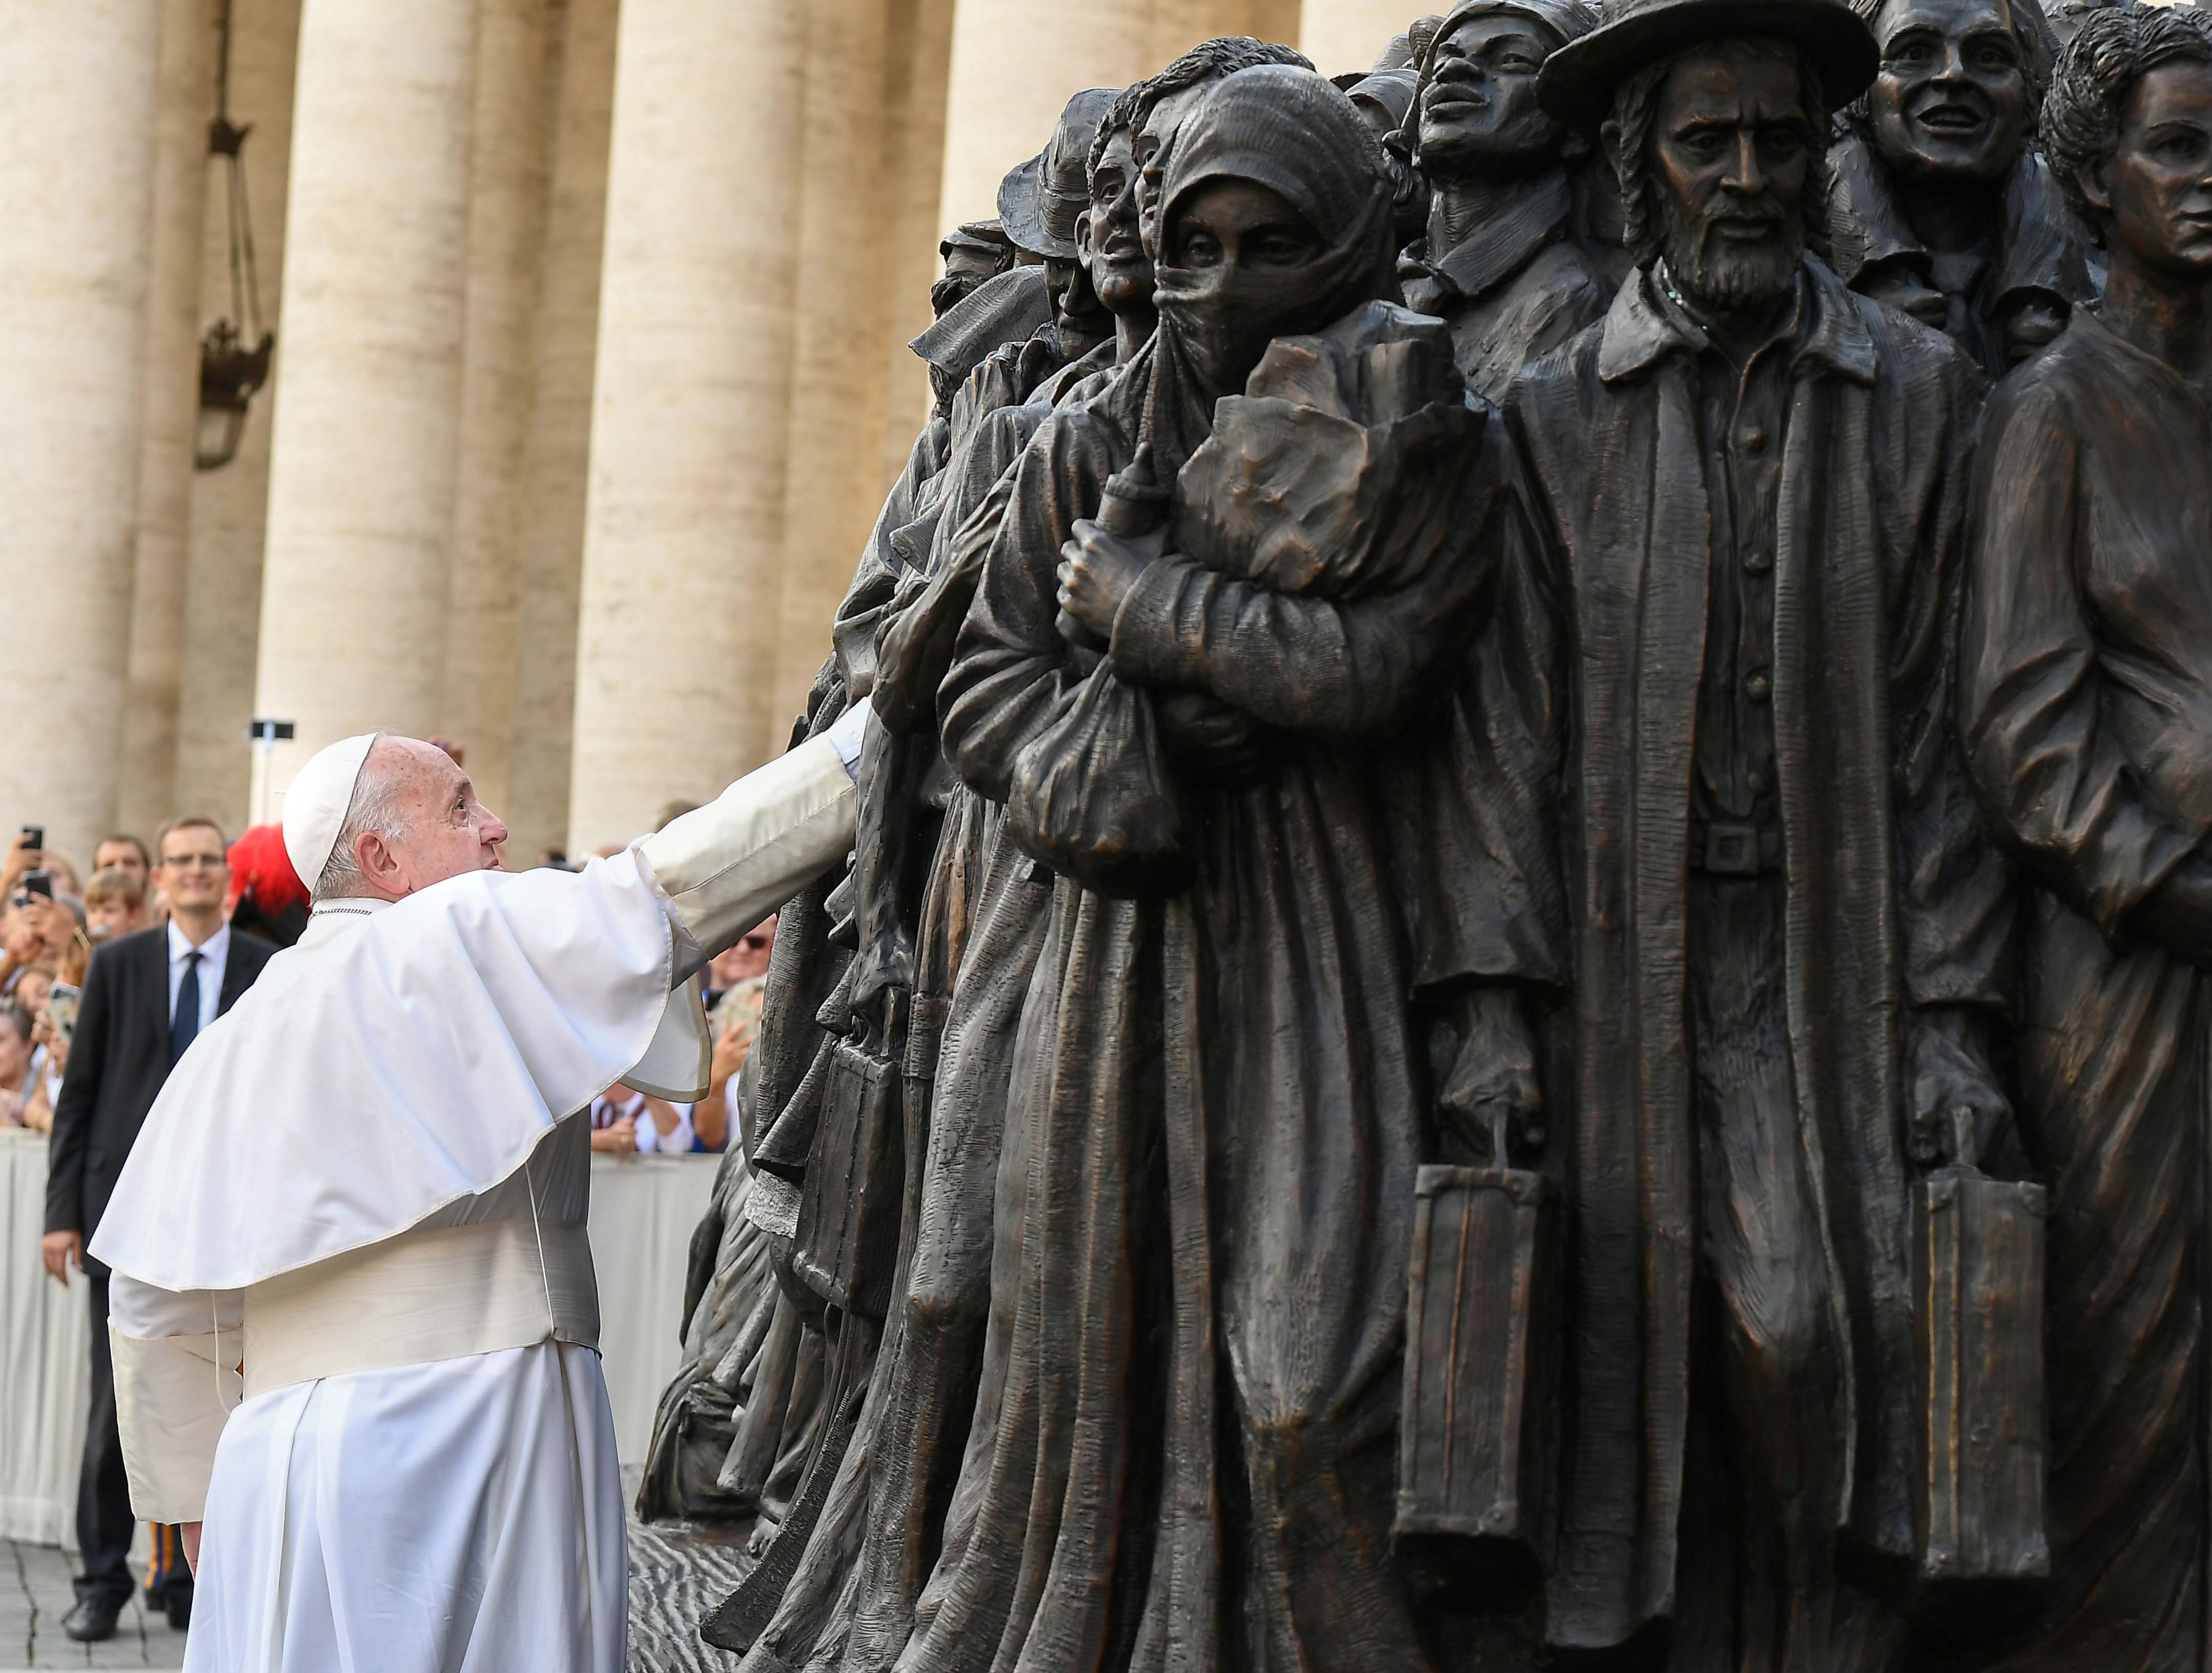 20190929T0840-133-CNS-POPE-MASS-MIGRANTS-REFUGEES